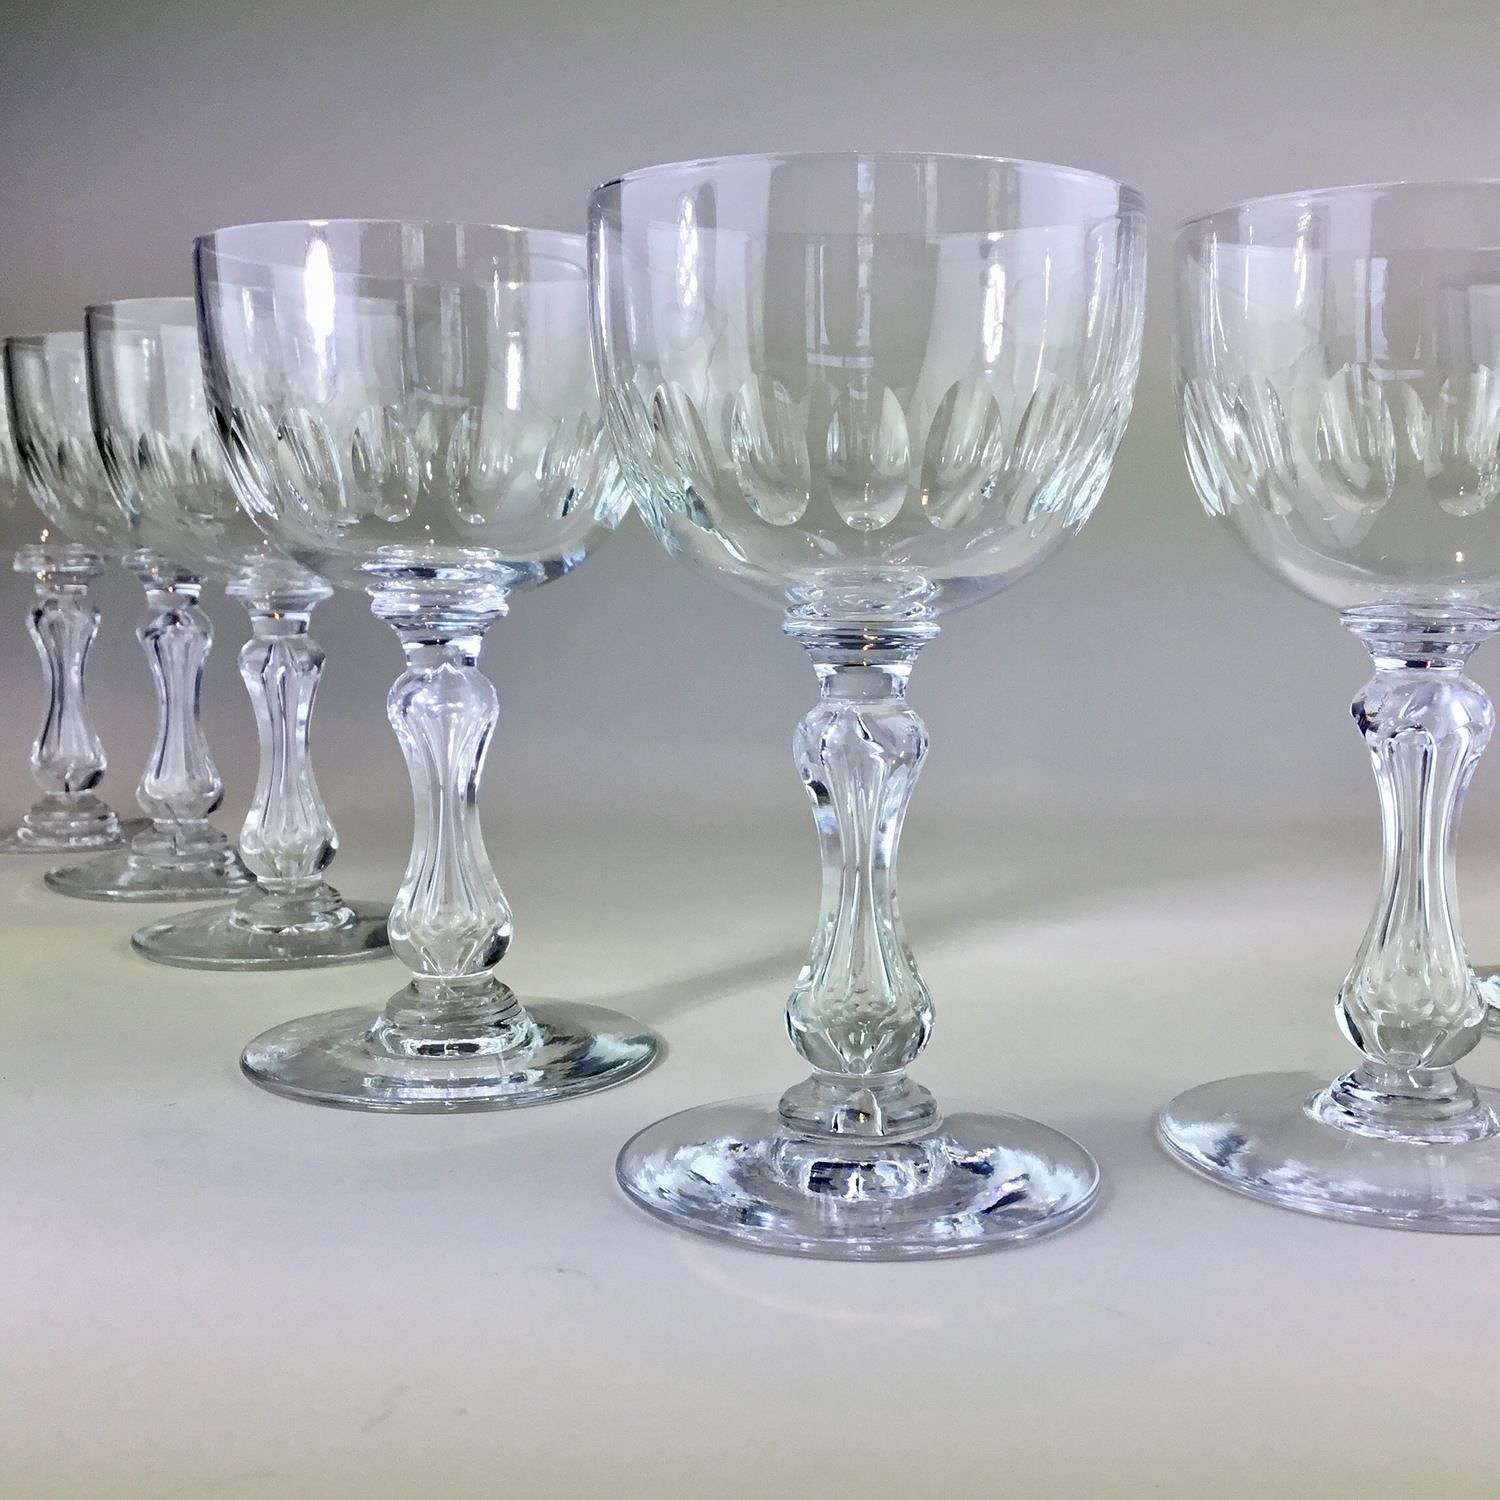 Splendid set of 9 Val St Lambert crystal wine glasses